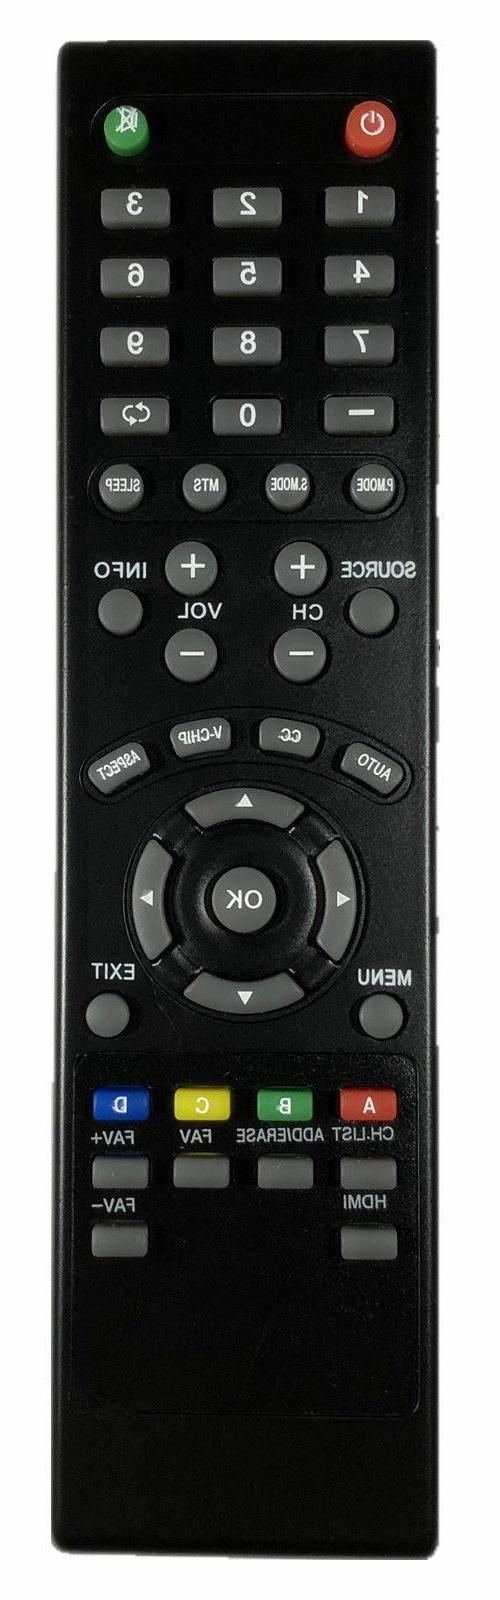 "Seiki LED TV Remote Control for ALL 19""~60"" SEIKI HDTVs - OE"